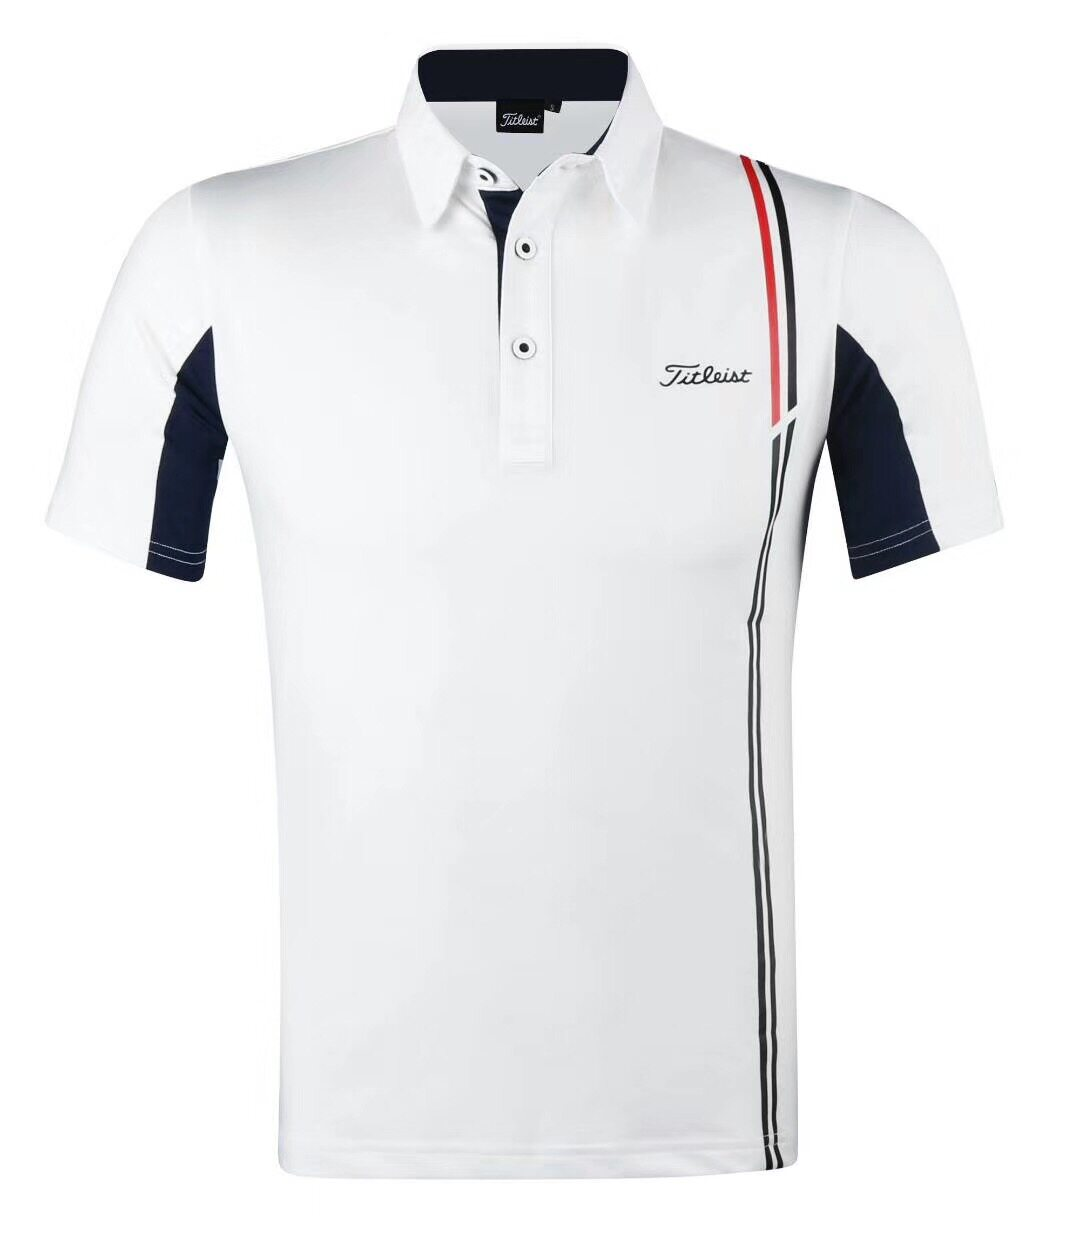 16f847fbd Titleist Polo Shirts Related Keywords & Suggestions - Titleist Polo ...